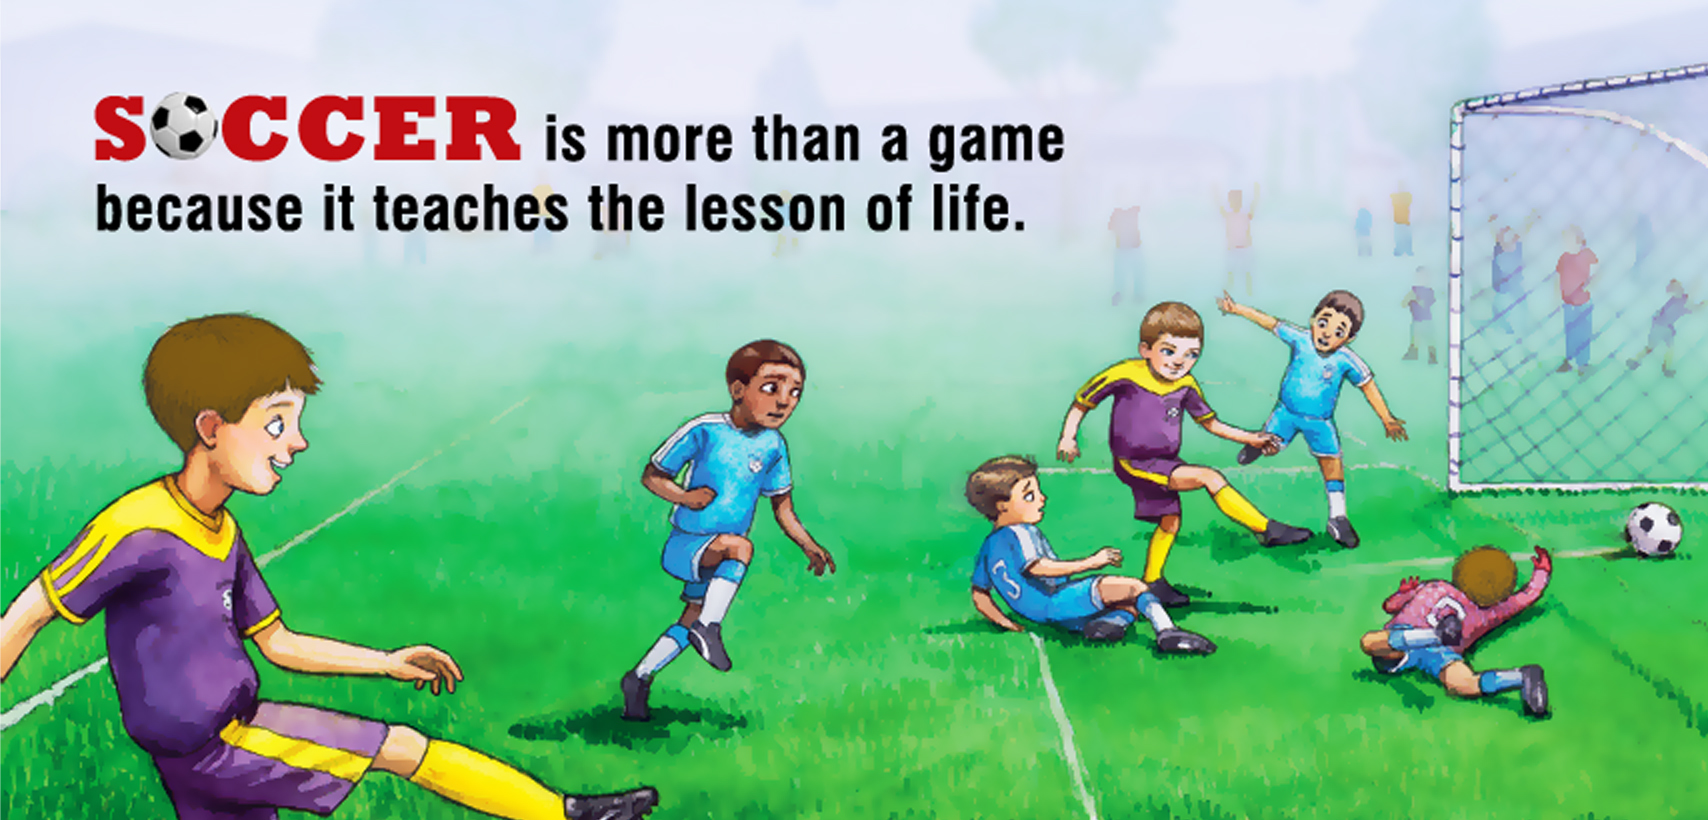 Soccer is more than a game